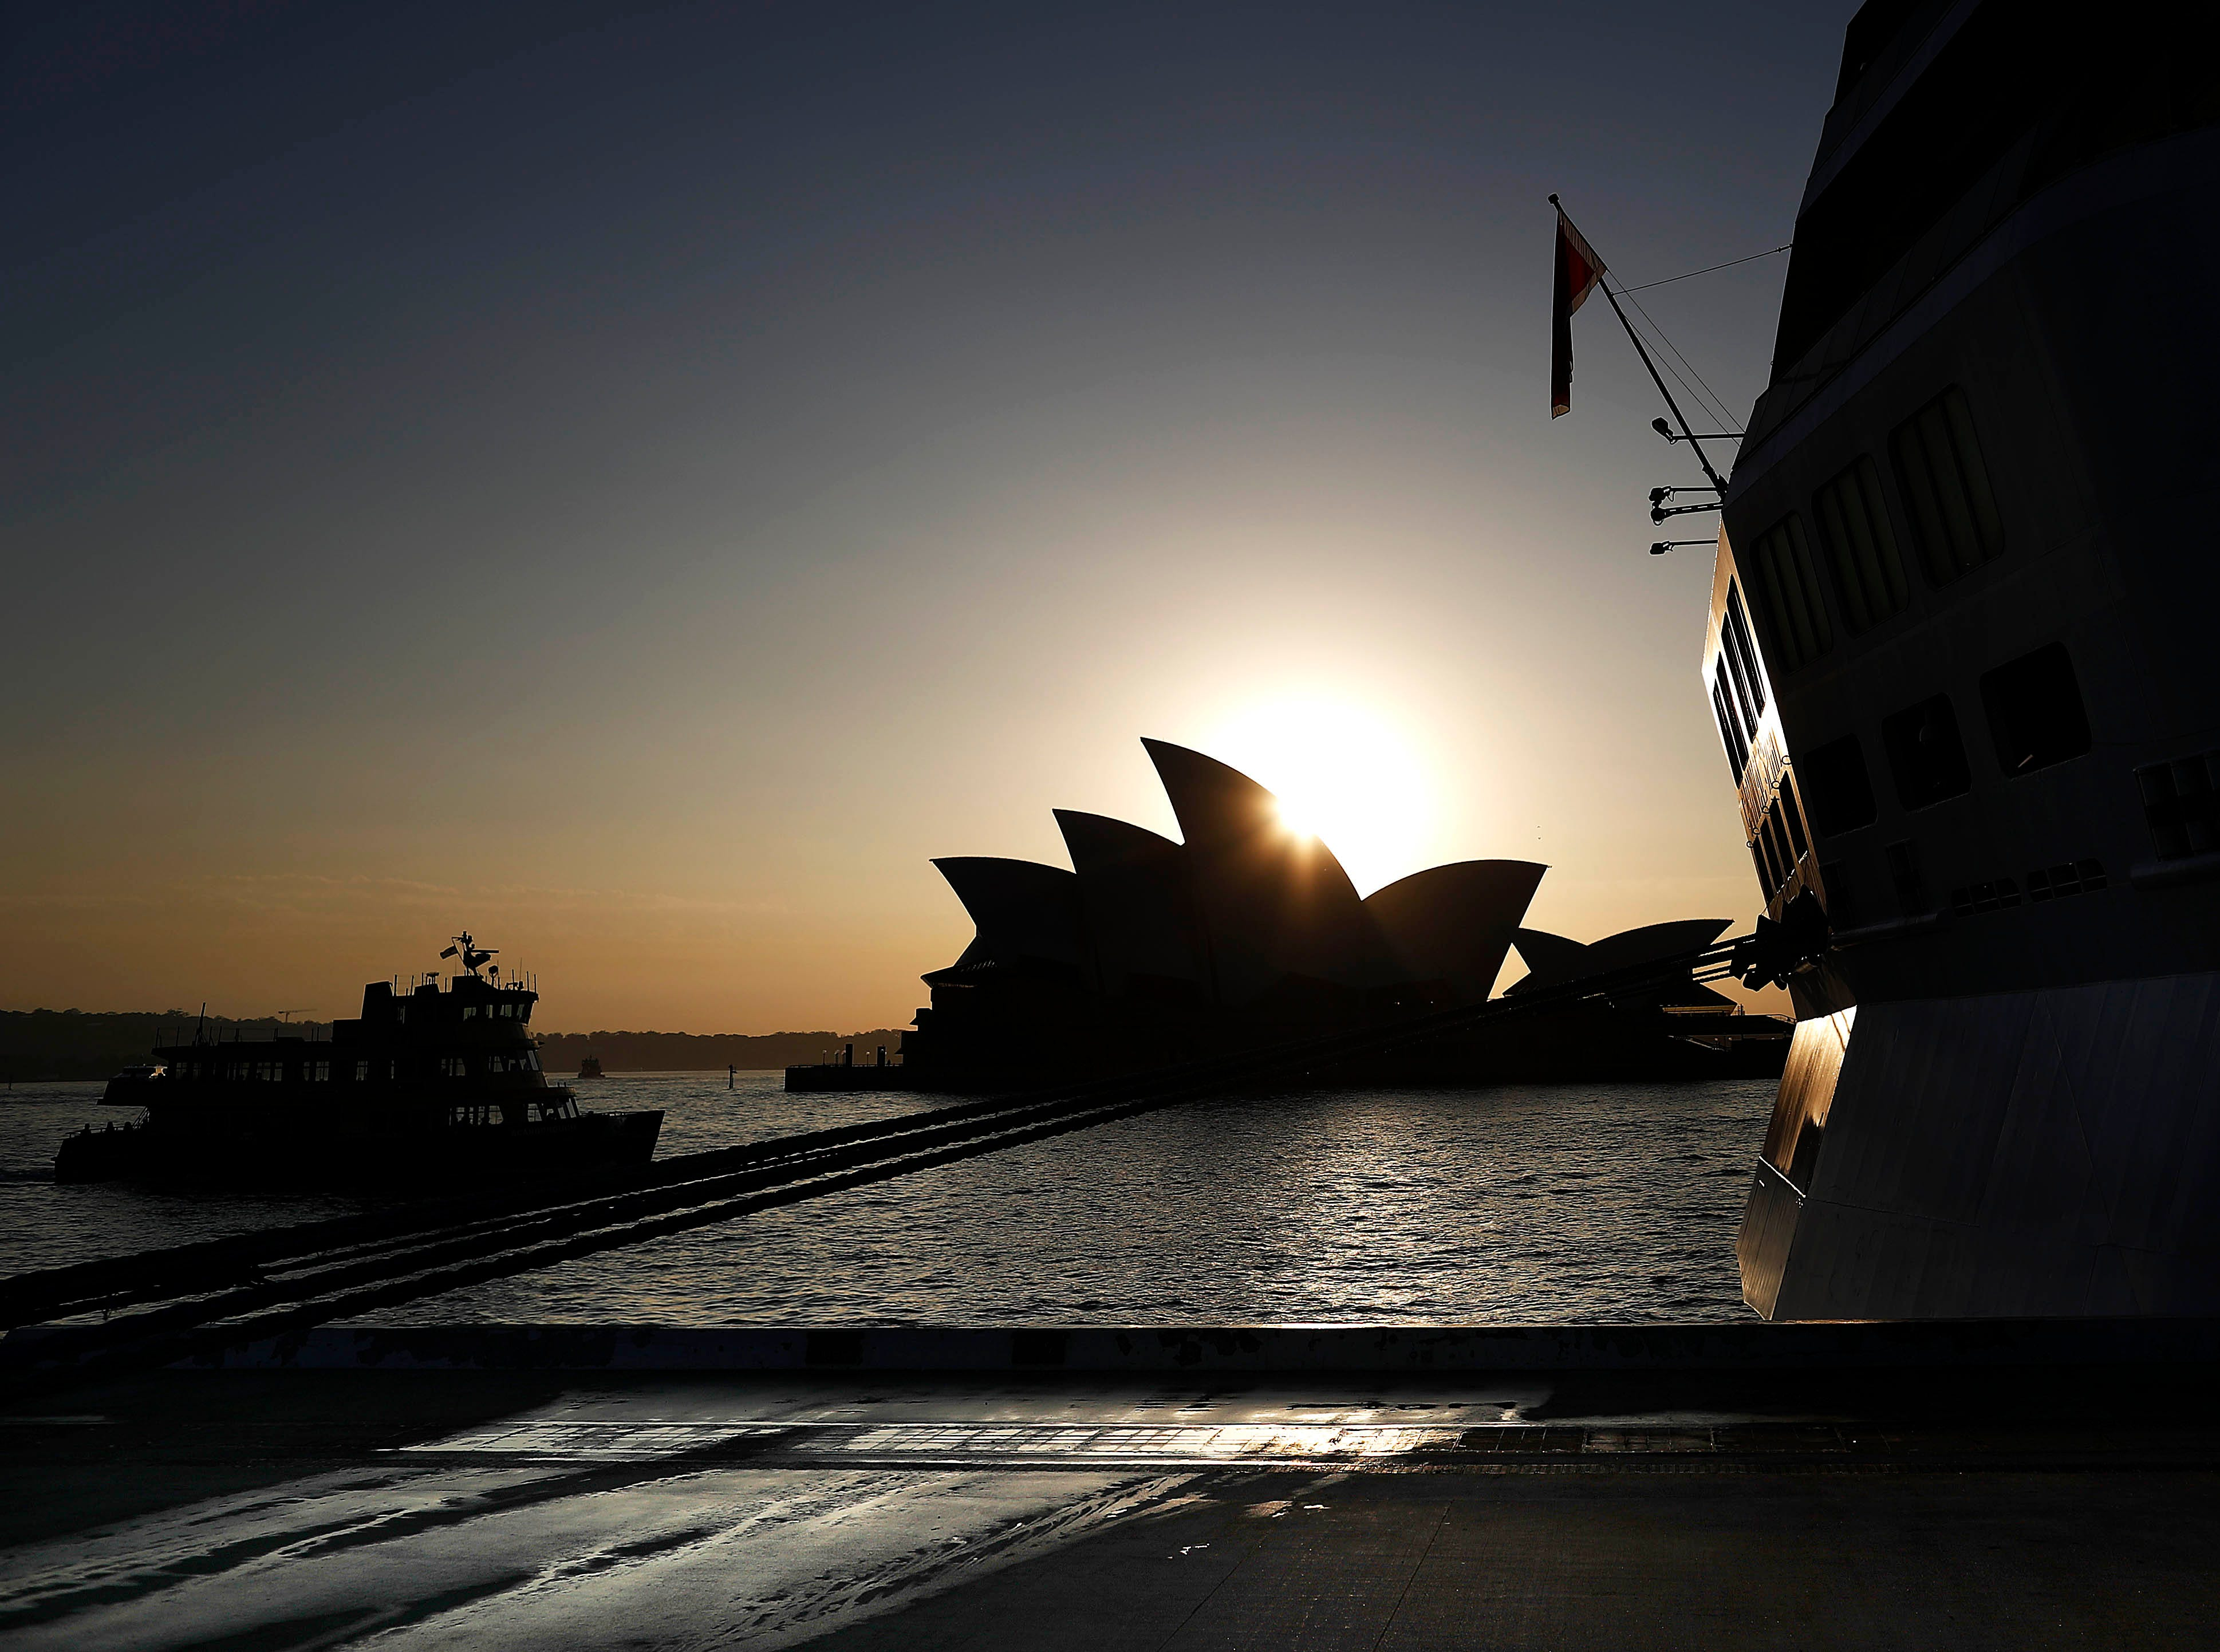 SYDNEY, AUSTRALIA - MARCH 12: A Ferry passes the Sydney Opera House at sunrise on March 12, 2019 in Sydney, Australia. (Photo by Ryan Pierse/Getty Images) ORG XMIT: 775314122 ORIG FILE ID: 1135208734